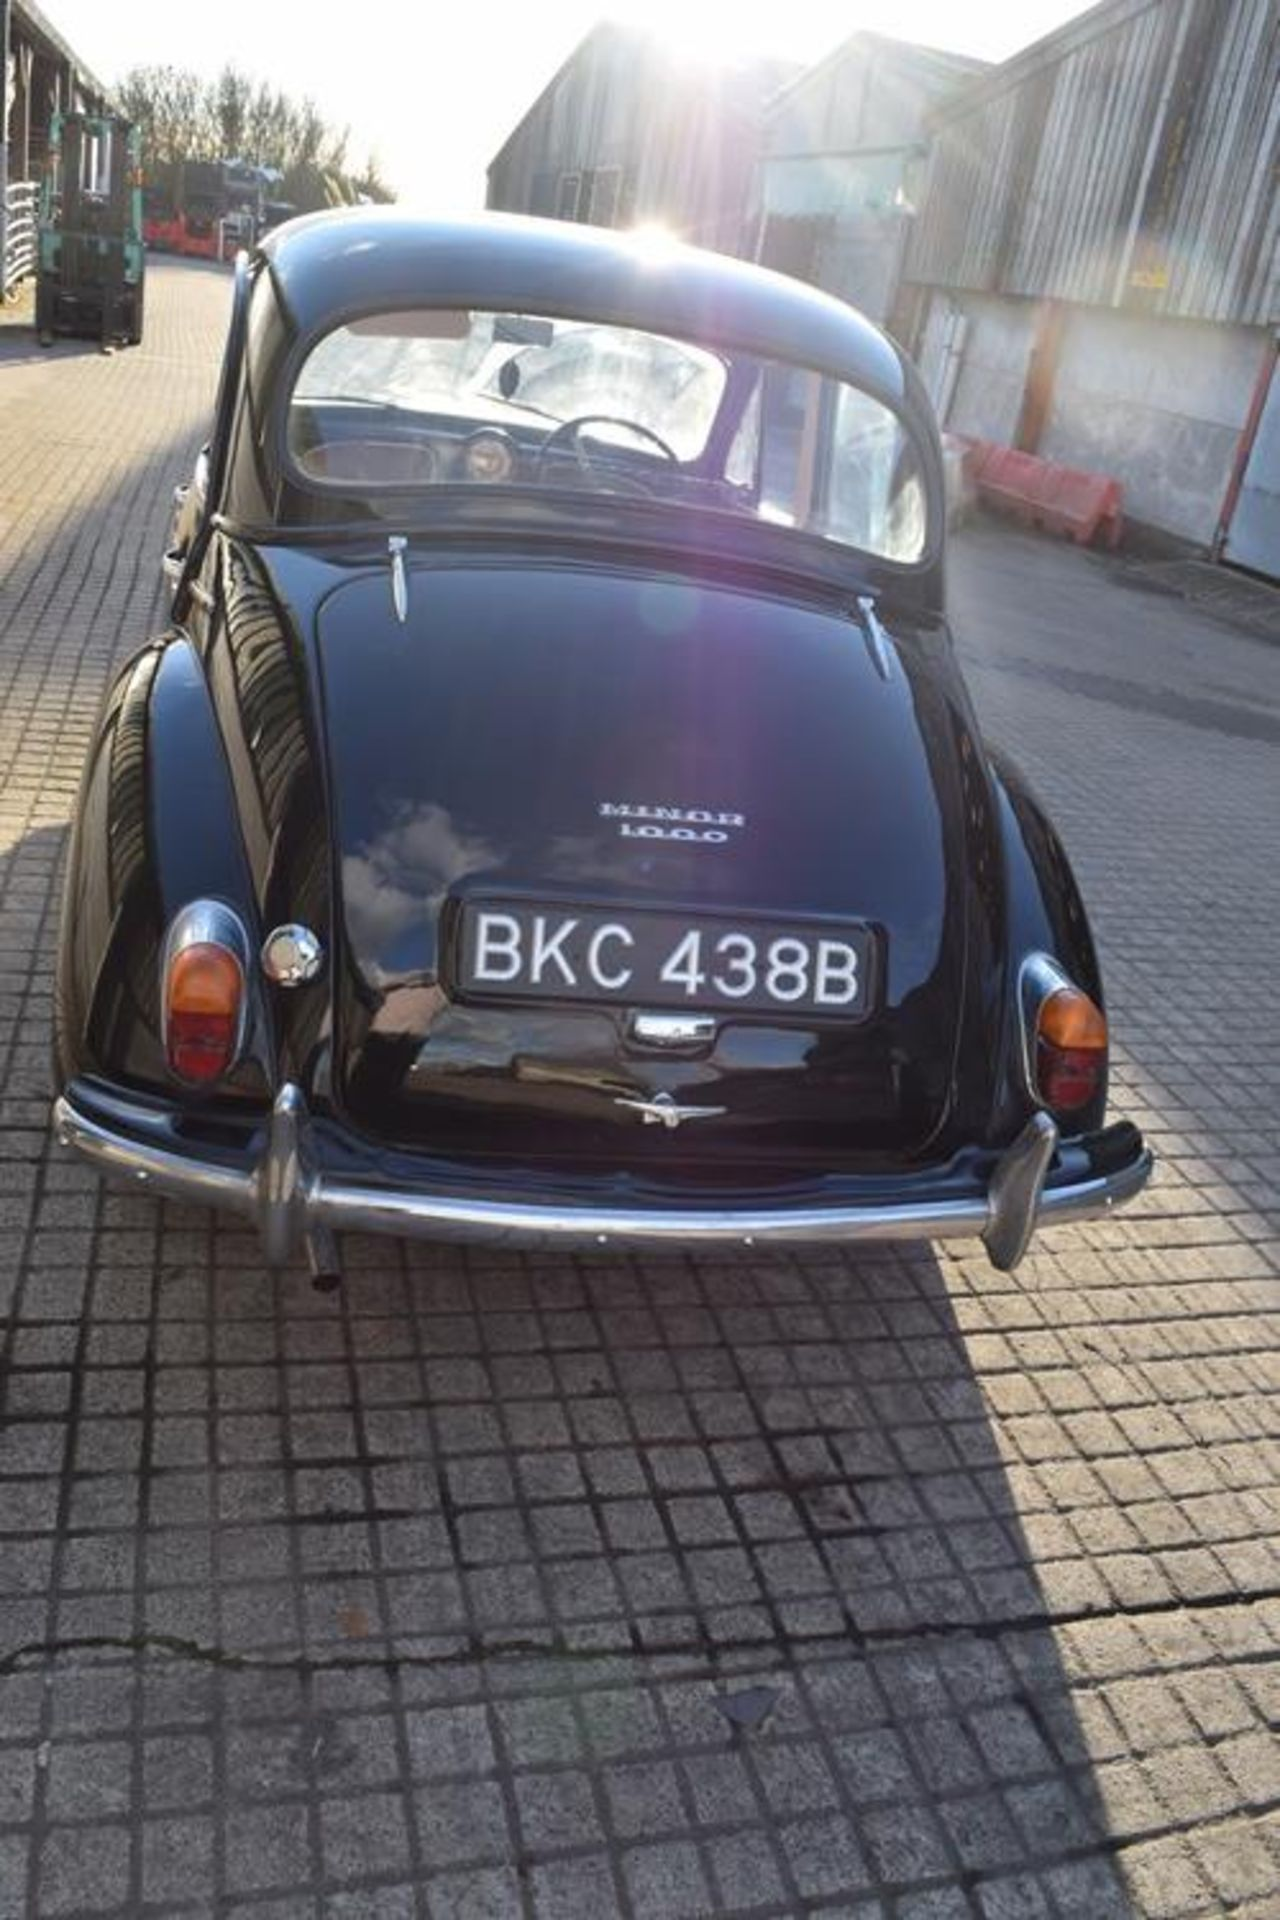 1964 Morris Minor 1000 in original black. The car has been restored with new flooring and vinyl - Image 16 of 16